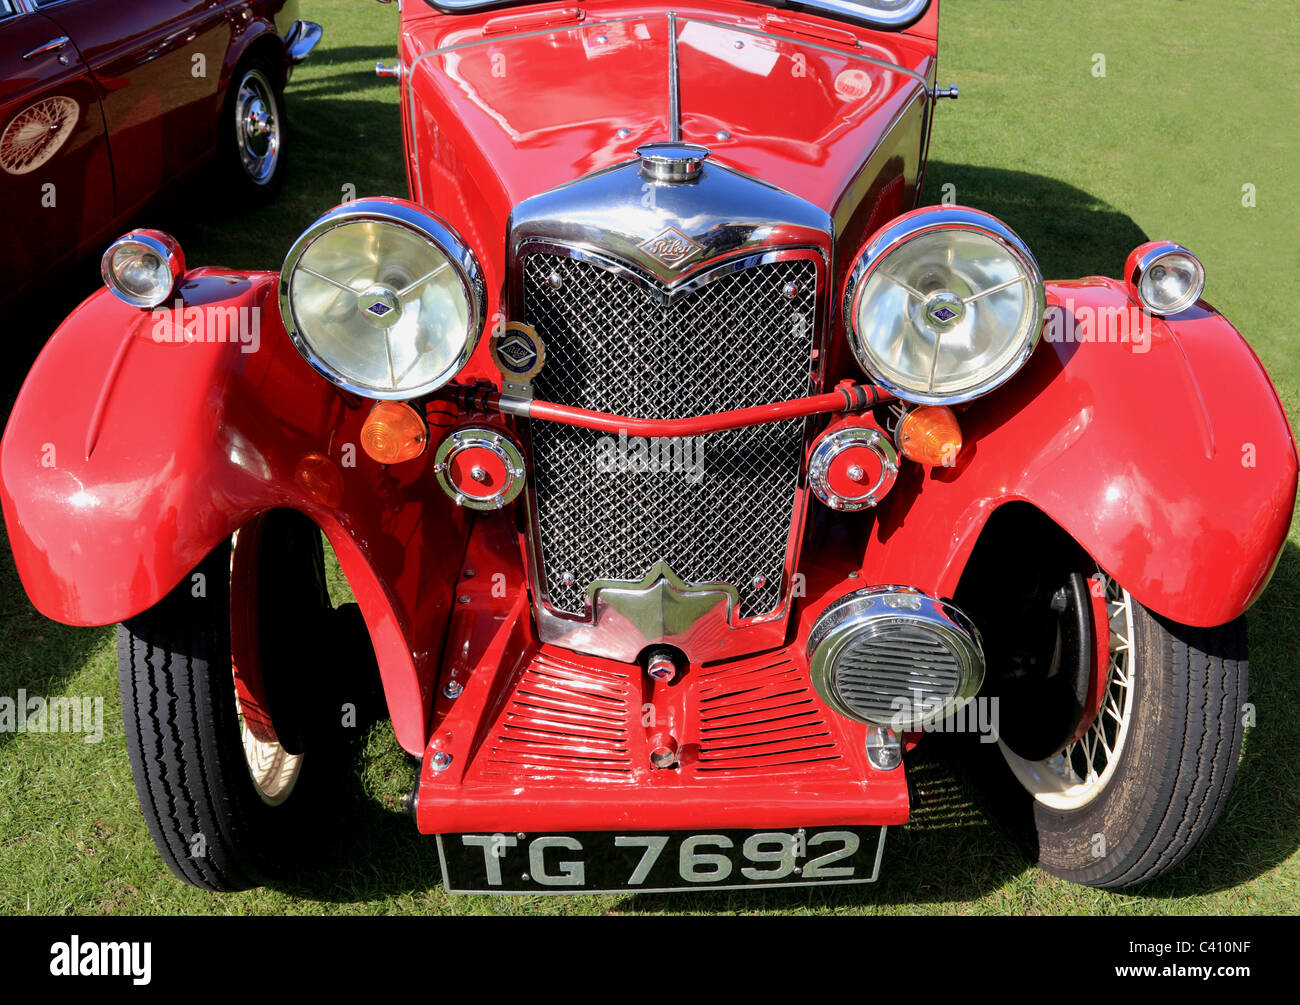 3425. The Grand Old Timers Car Rally 2010, Folkestone, Kent, UK - Stock Image